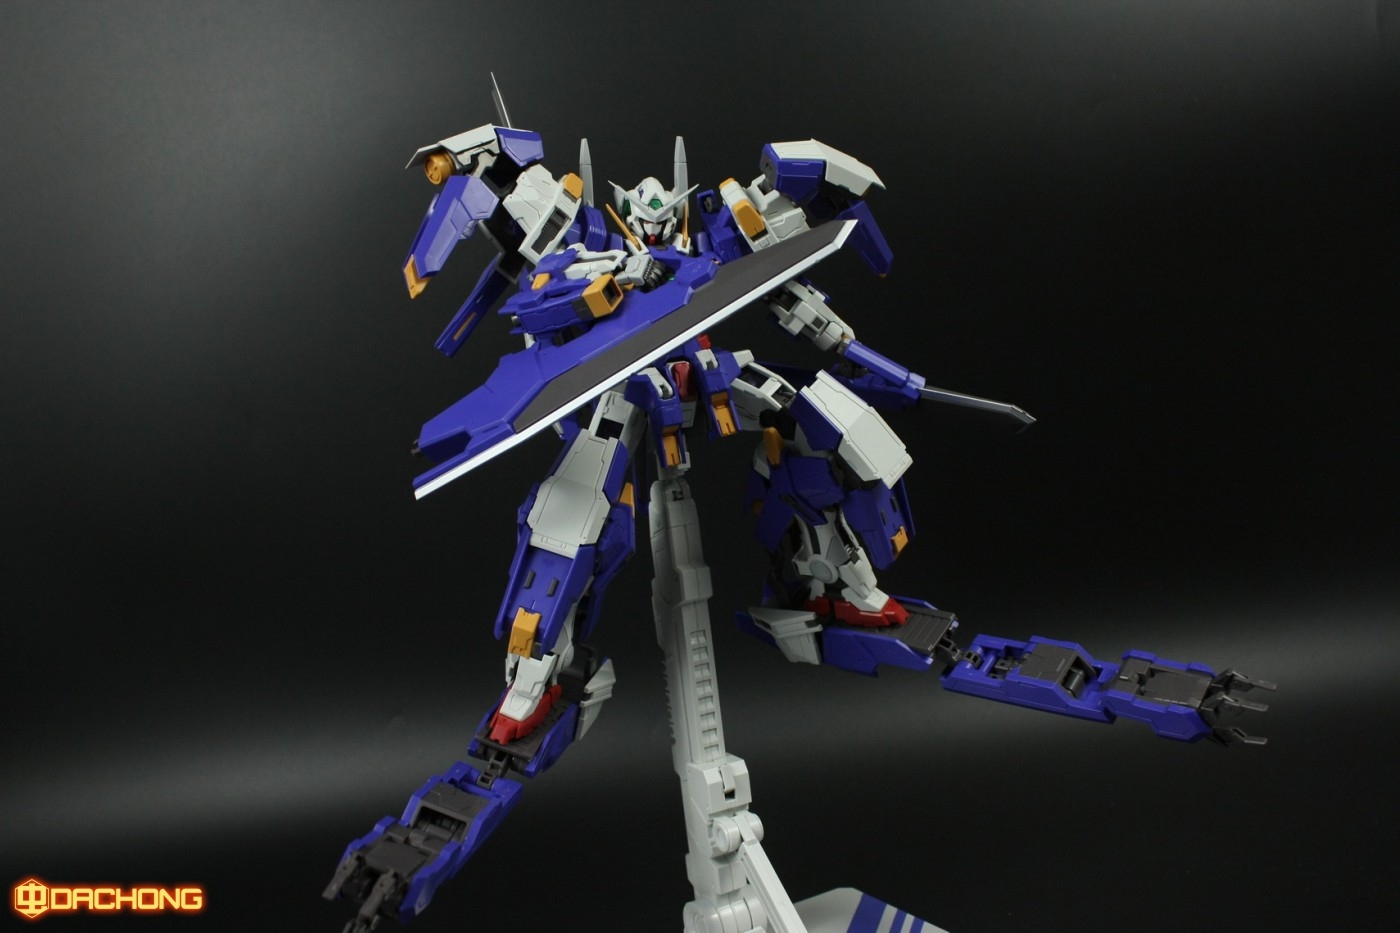 S254_MG_exia_HS_review_inask_103.jpg